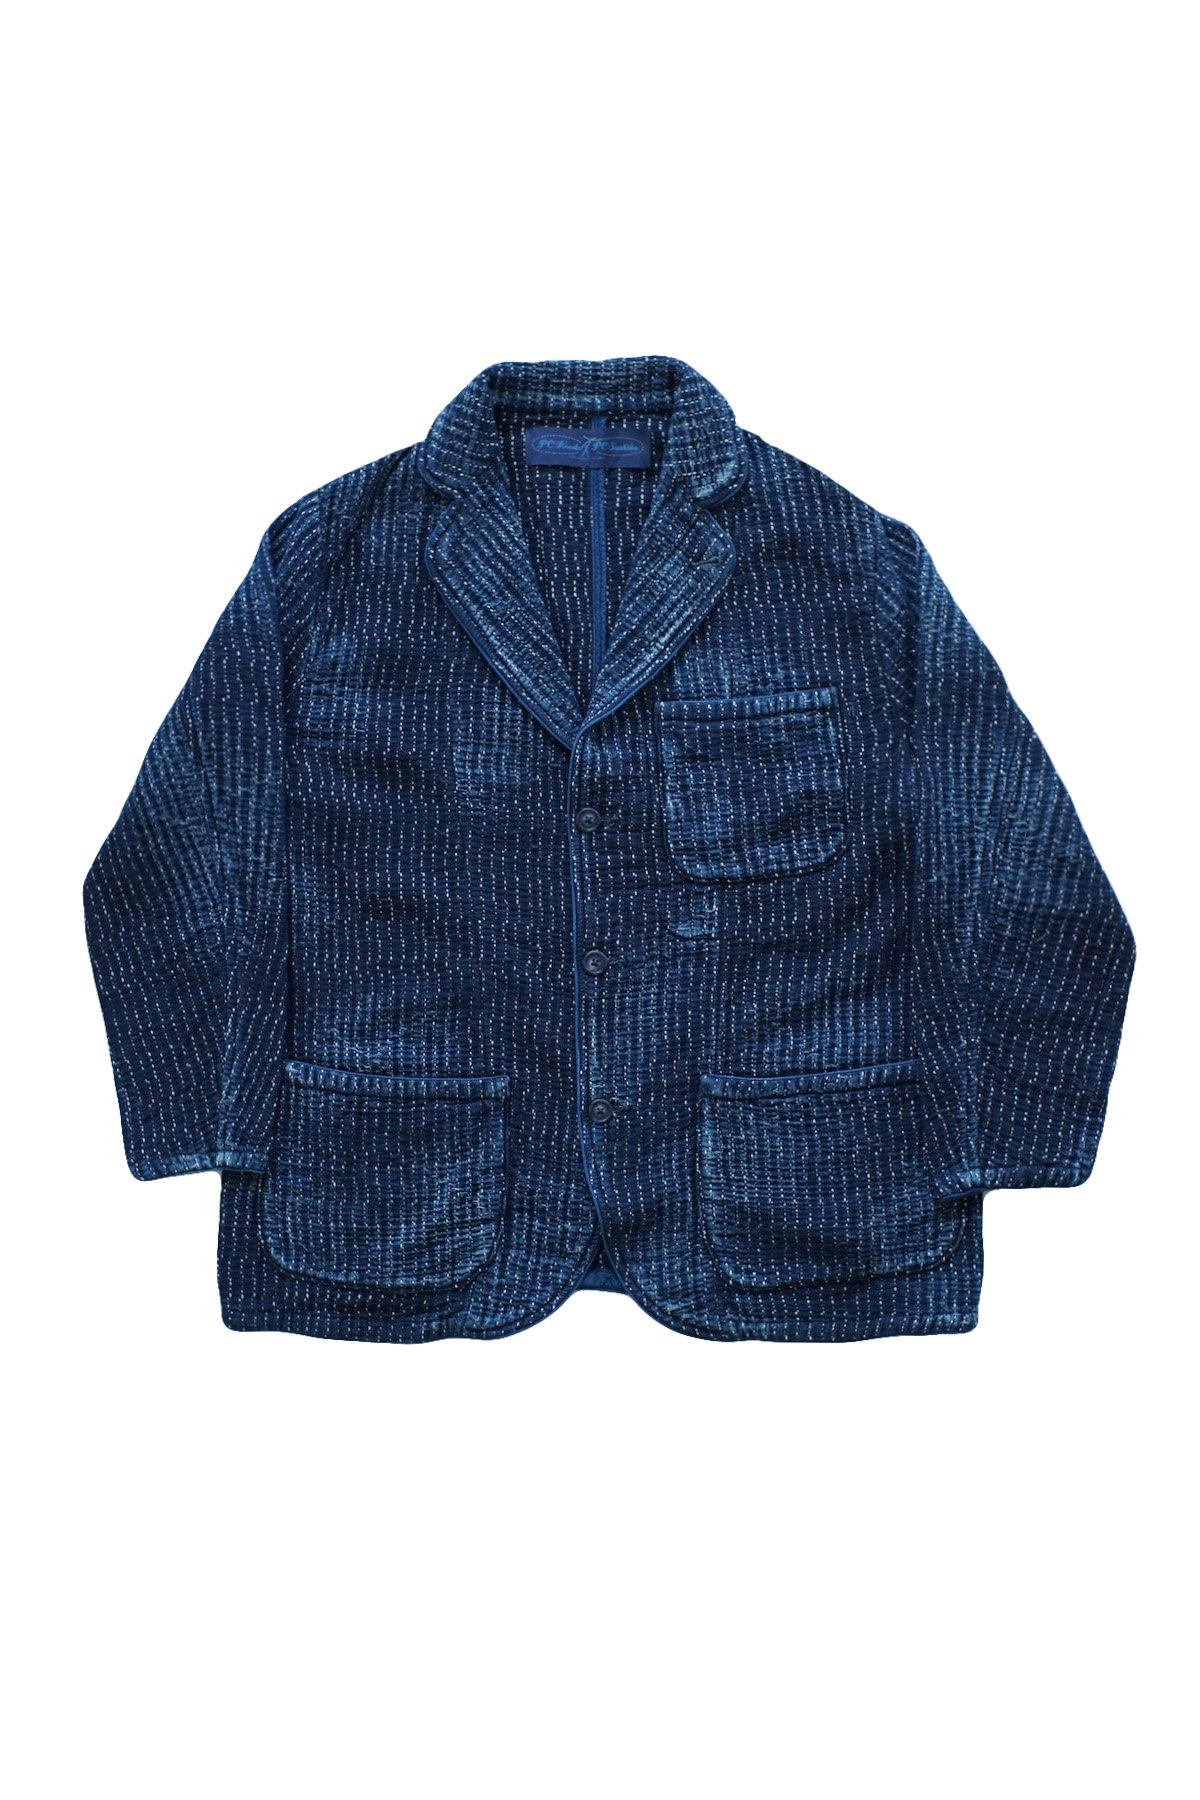 - Porter Classic ★★★ - SASHIKO LIGHT TAILORED JACKET - BLUE - PRICE  110,000 tax-in